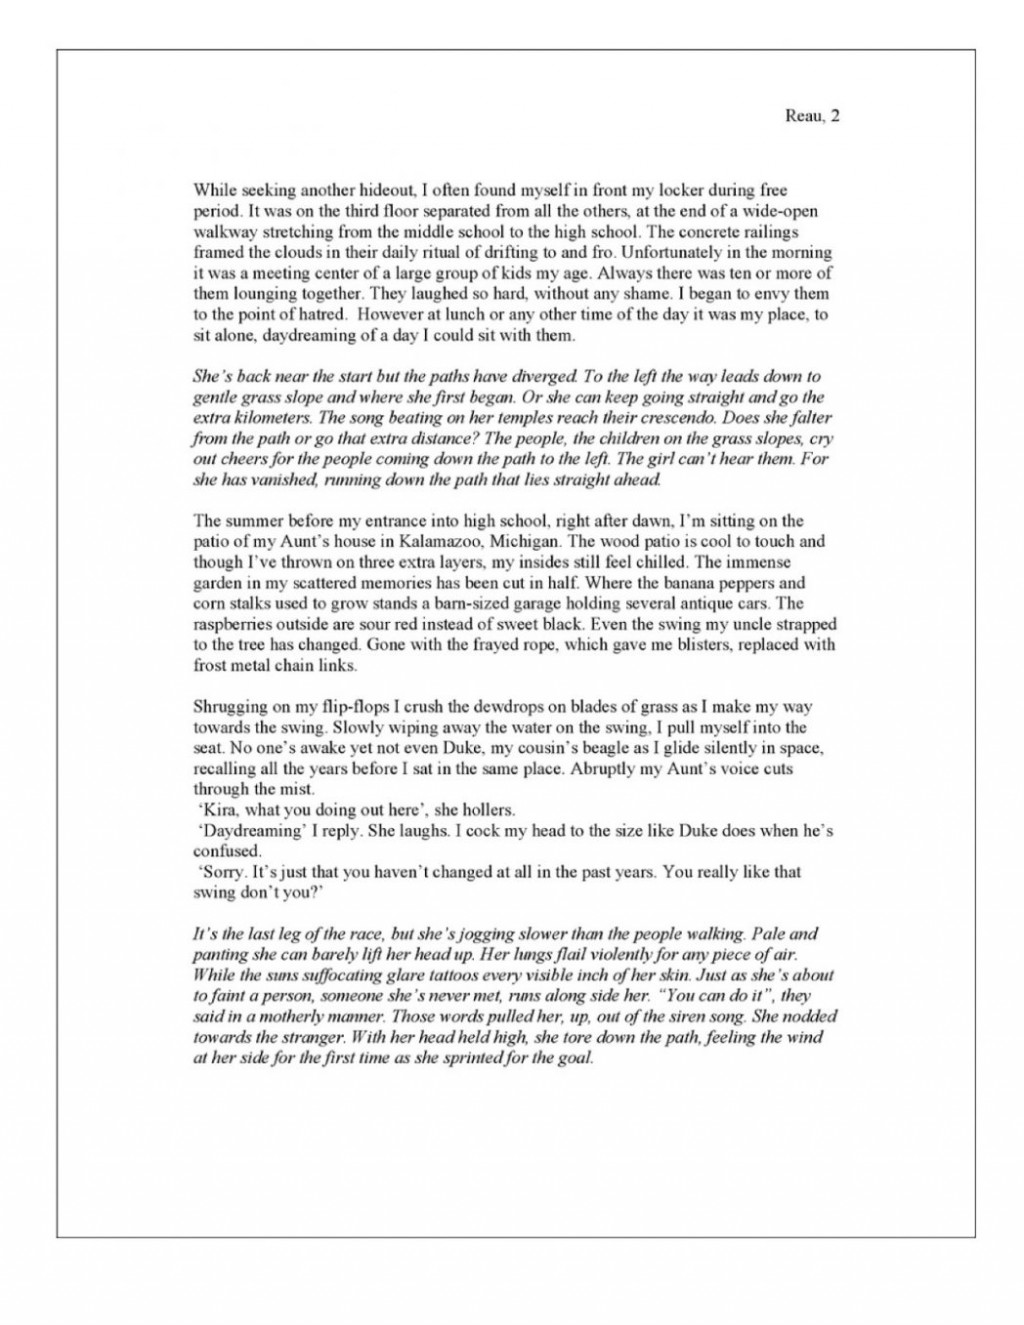 018 Narration Essay Define Narrative Definition Of The Life A Misant How To Write My Help Me 1048x1357 Fascinating Literacy Nonfiction Large